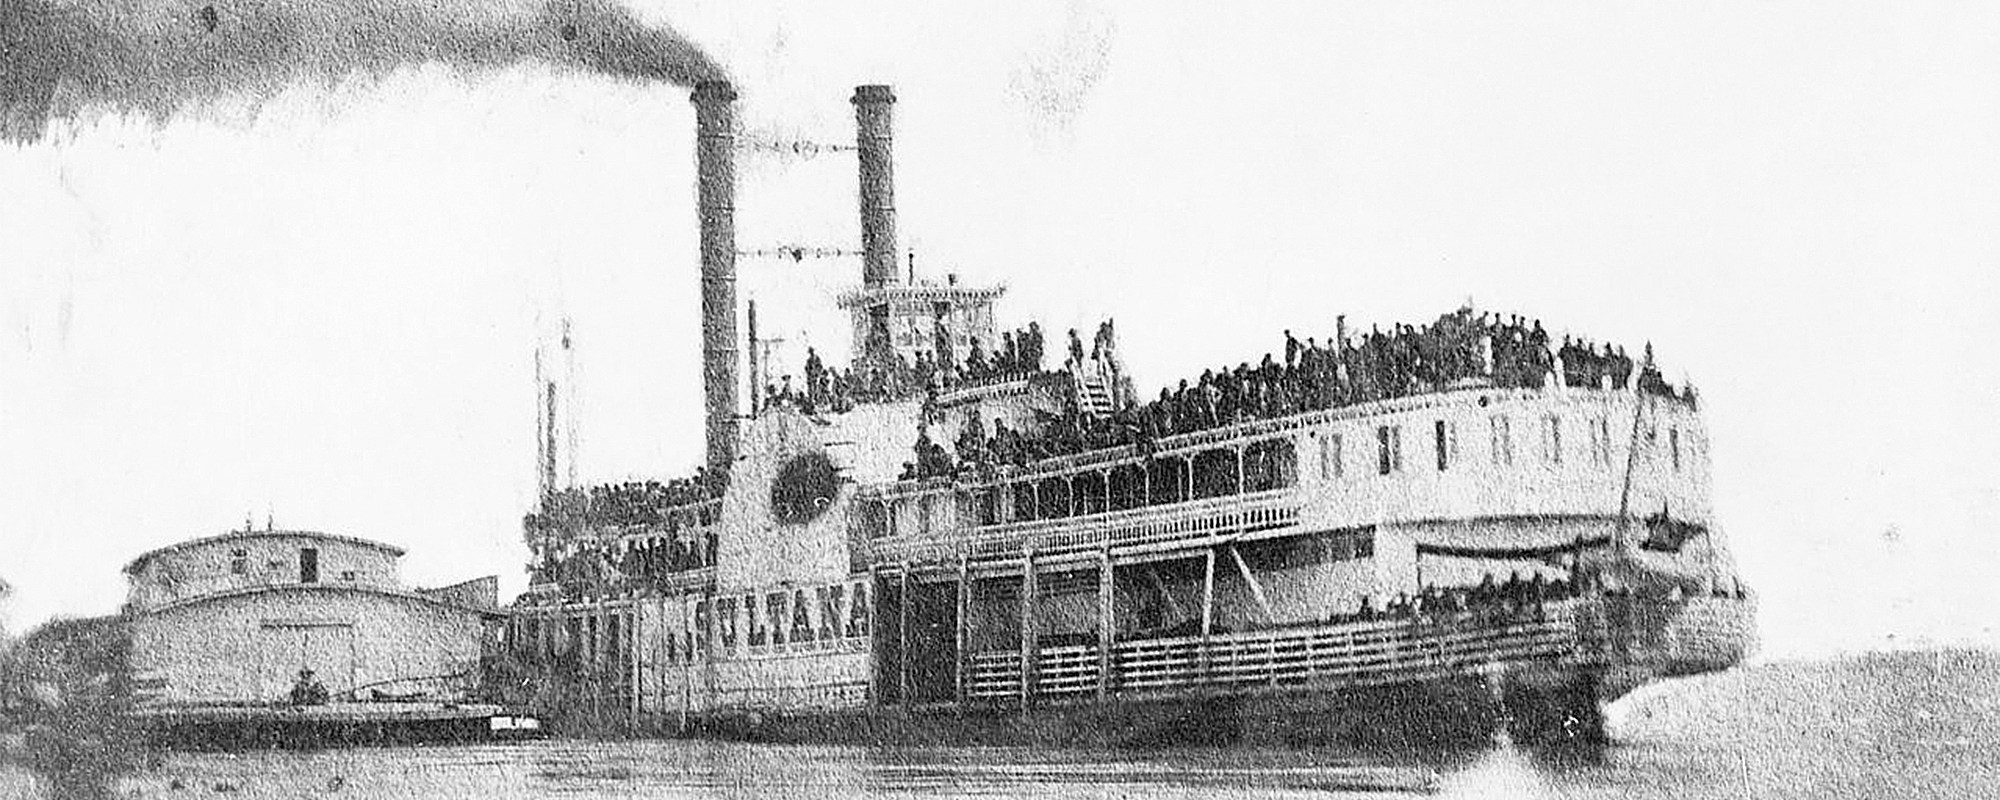 Sultana Overcrowded In River Featured